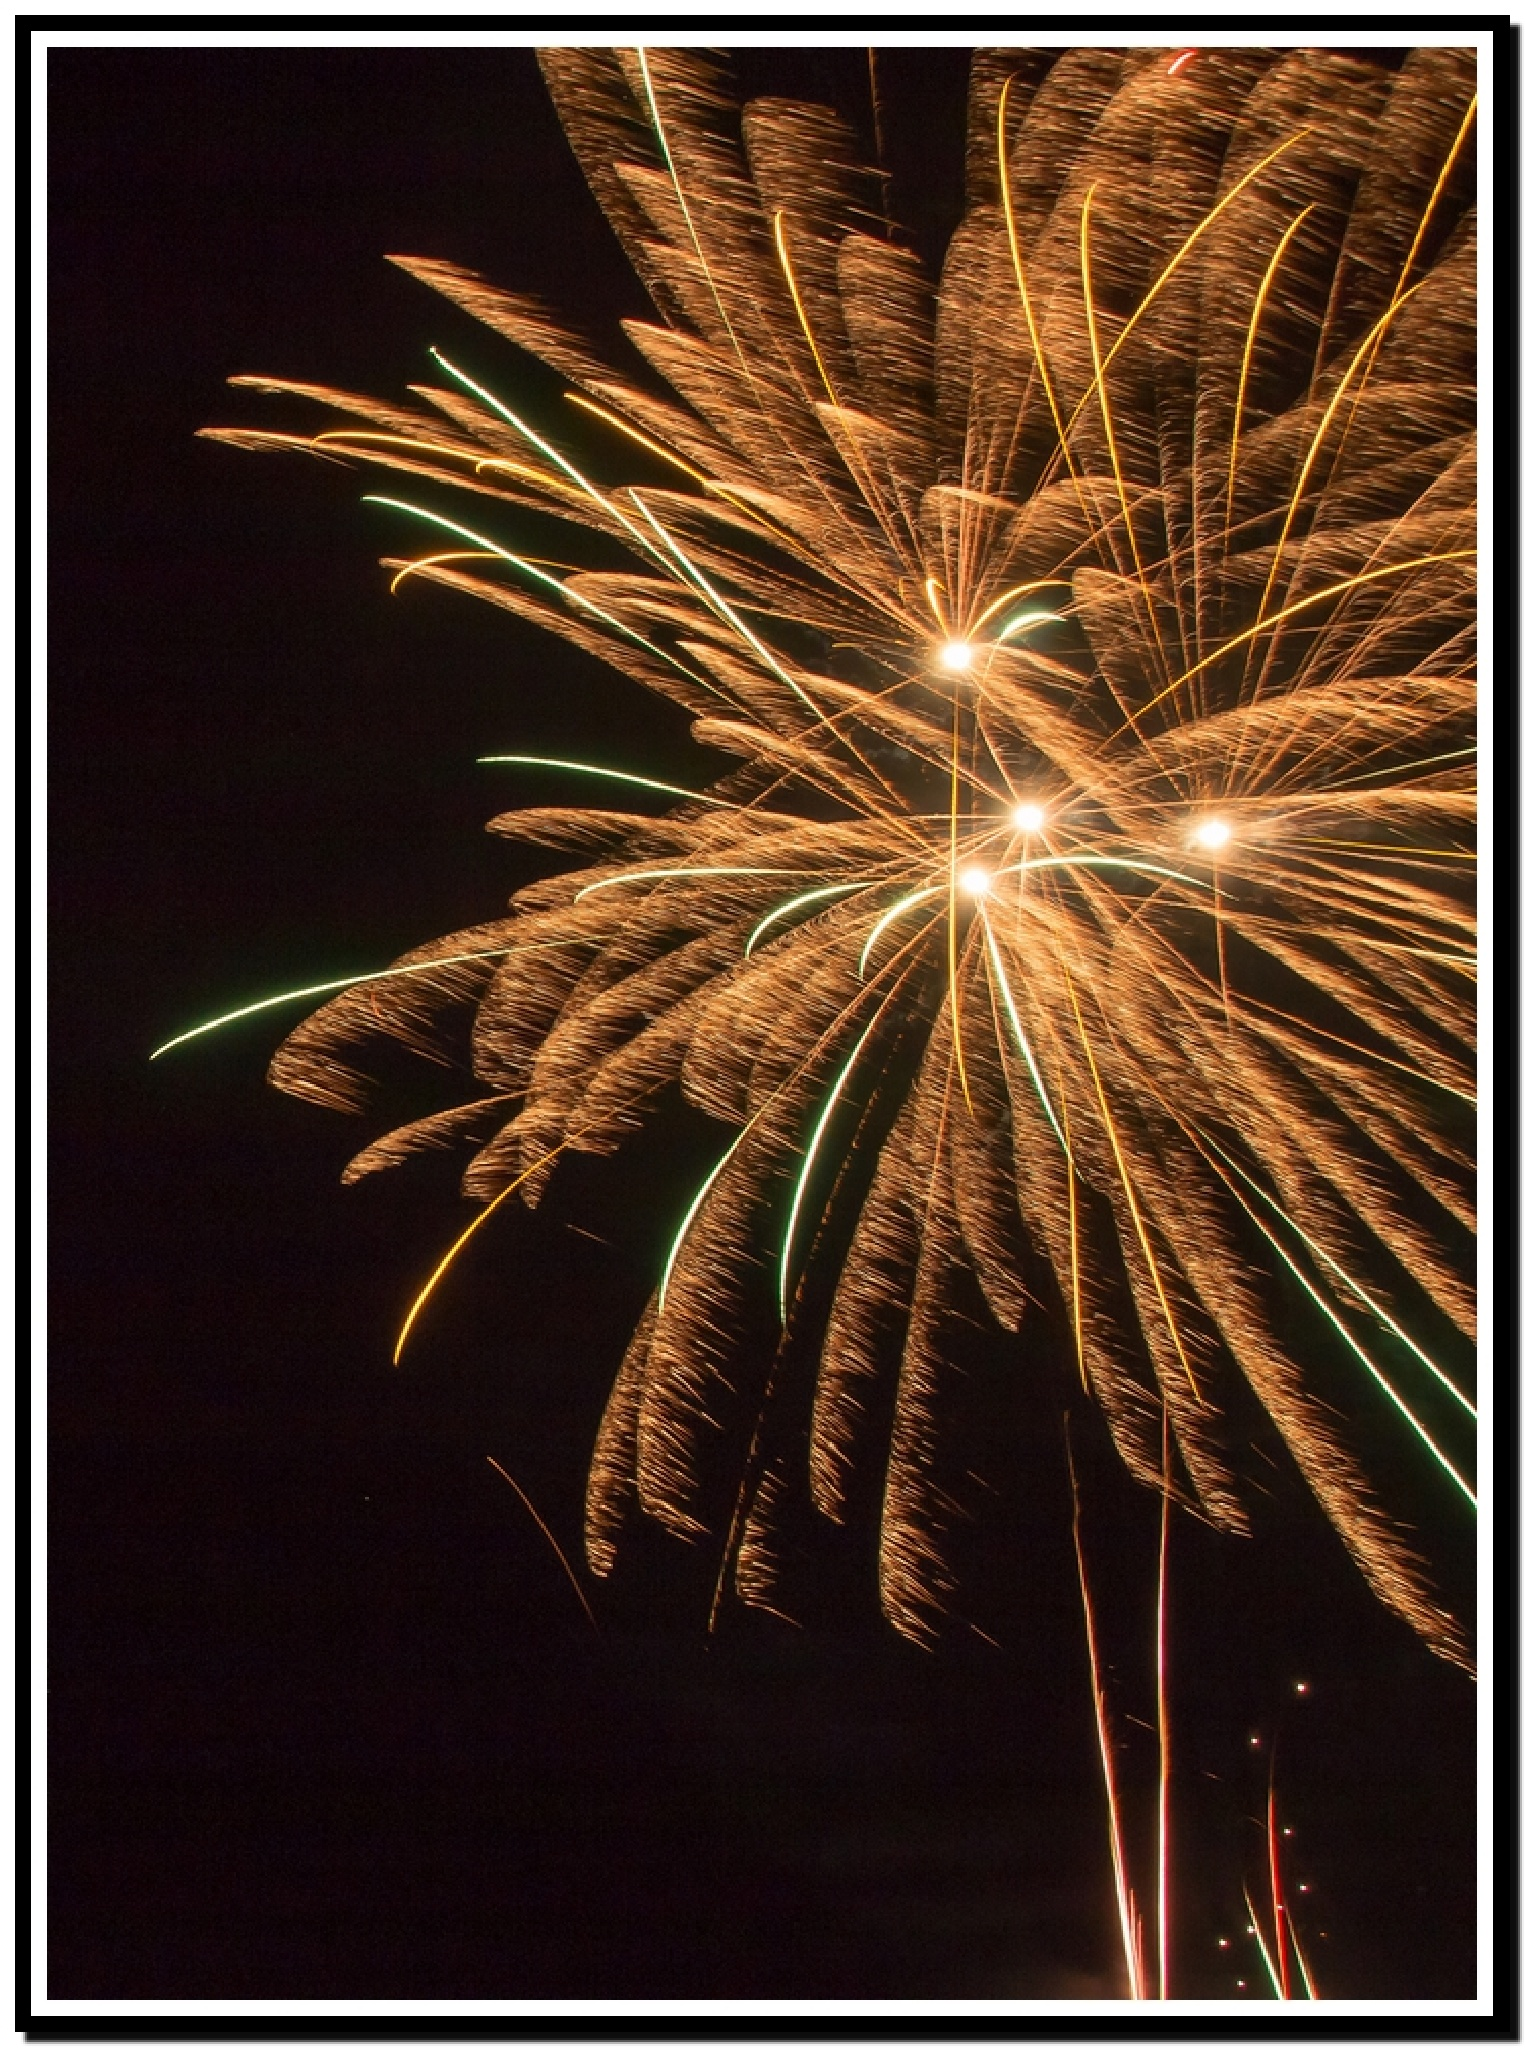 Fireworks on the beach by ABRossouw